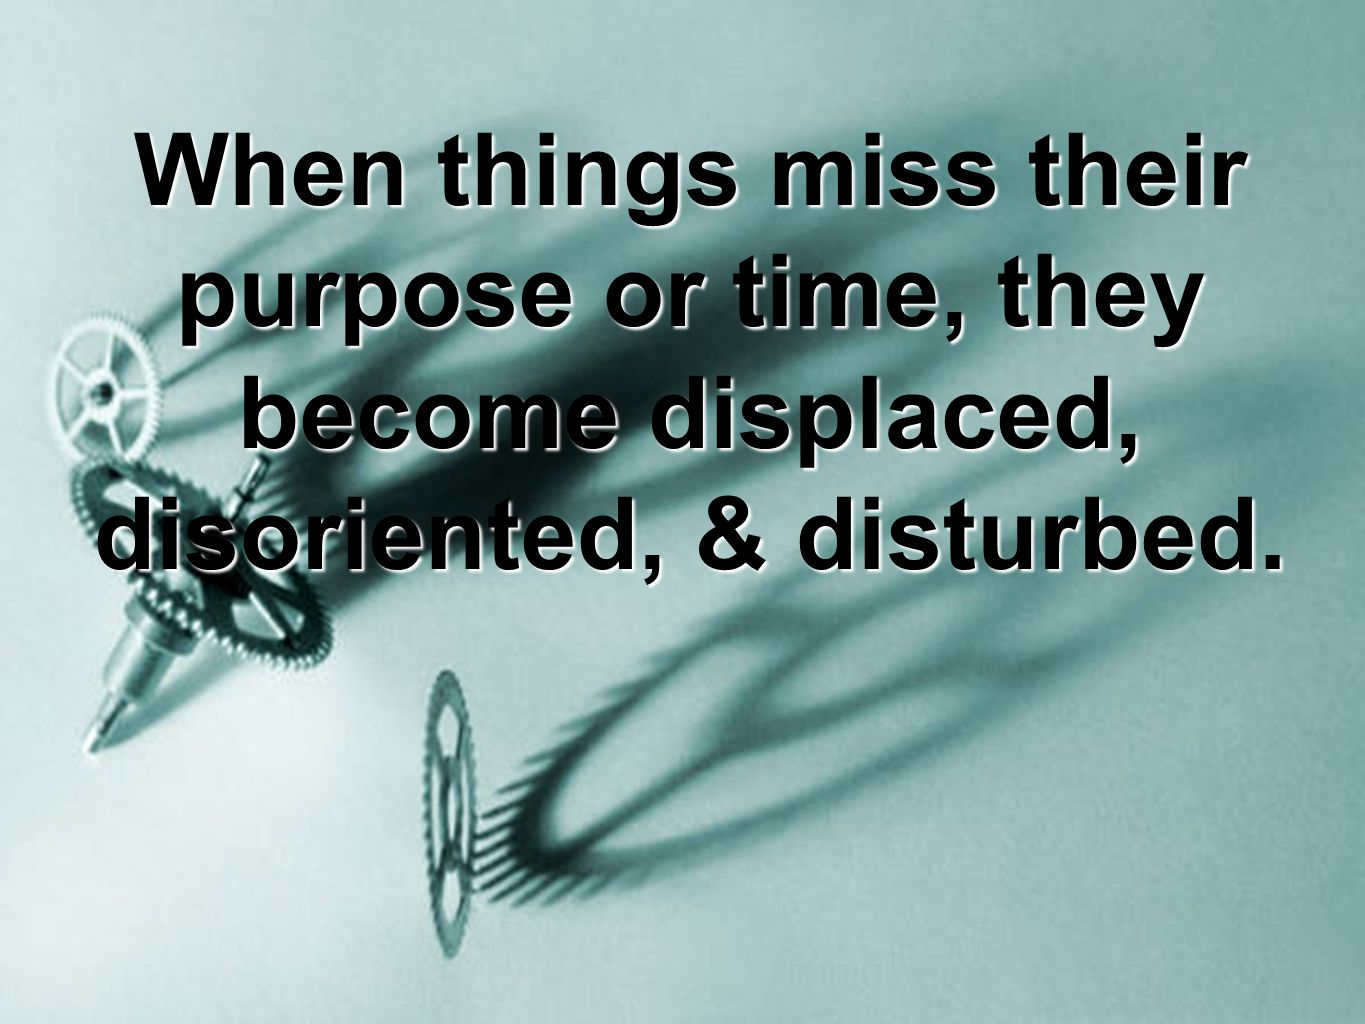 When things miss their purpose or time, they become displaced, disoriented, & disturbed.